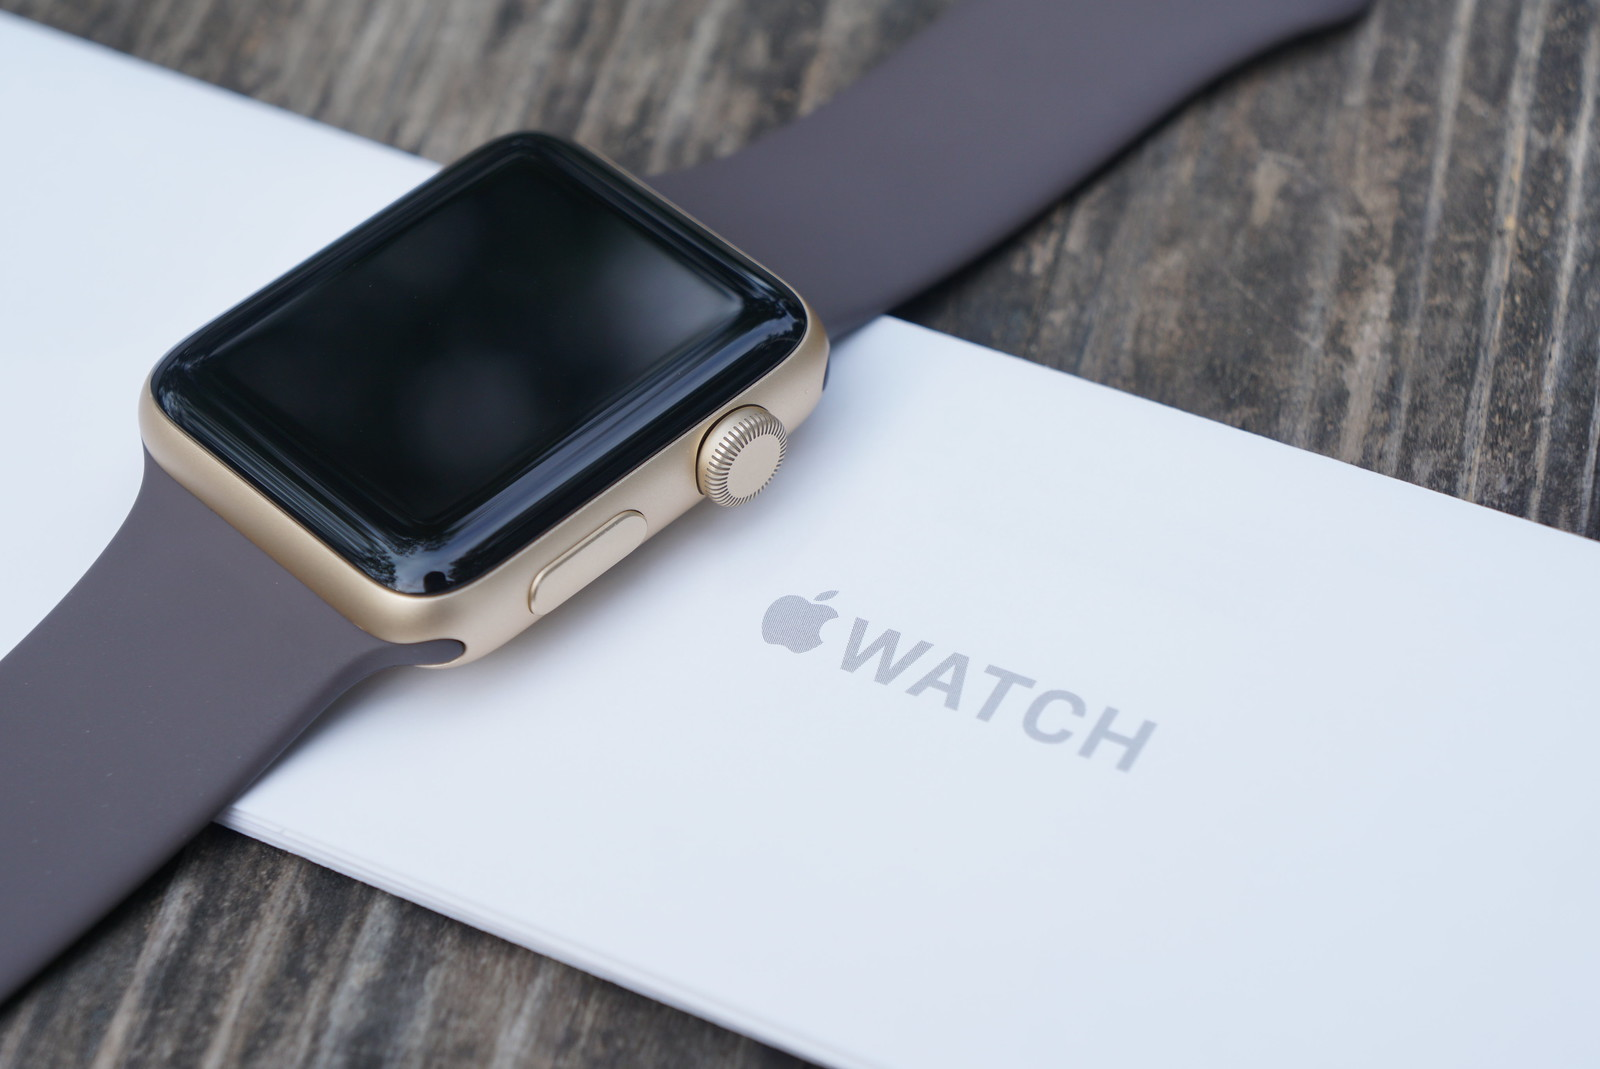 Apple Watch、Apple TVの売上高